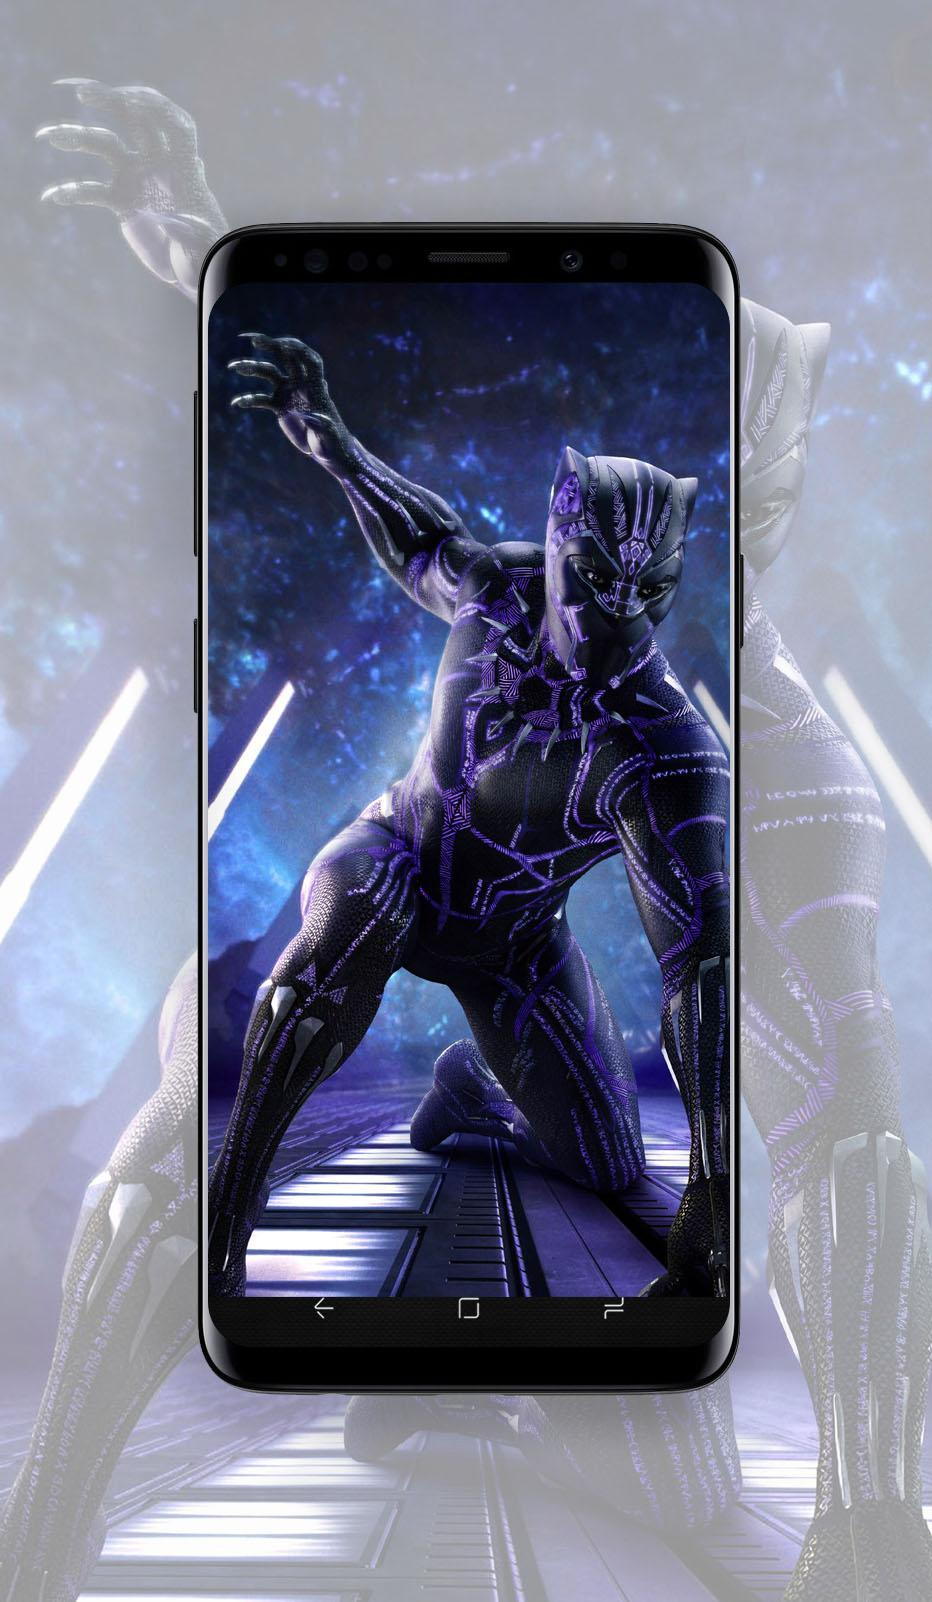 Black Panther Wallpaper Hd 4k For Android Apk Download